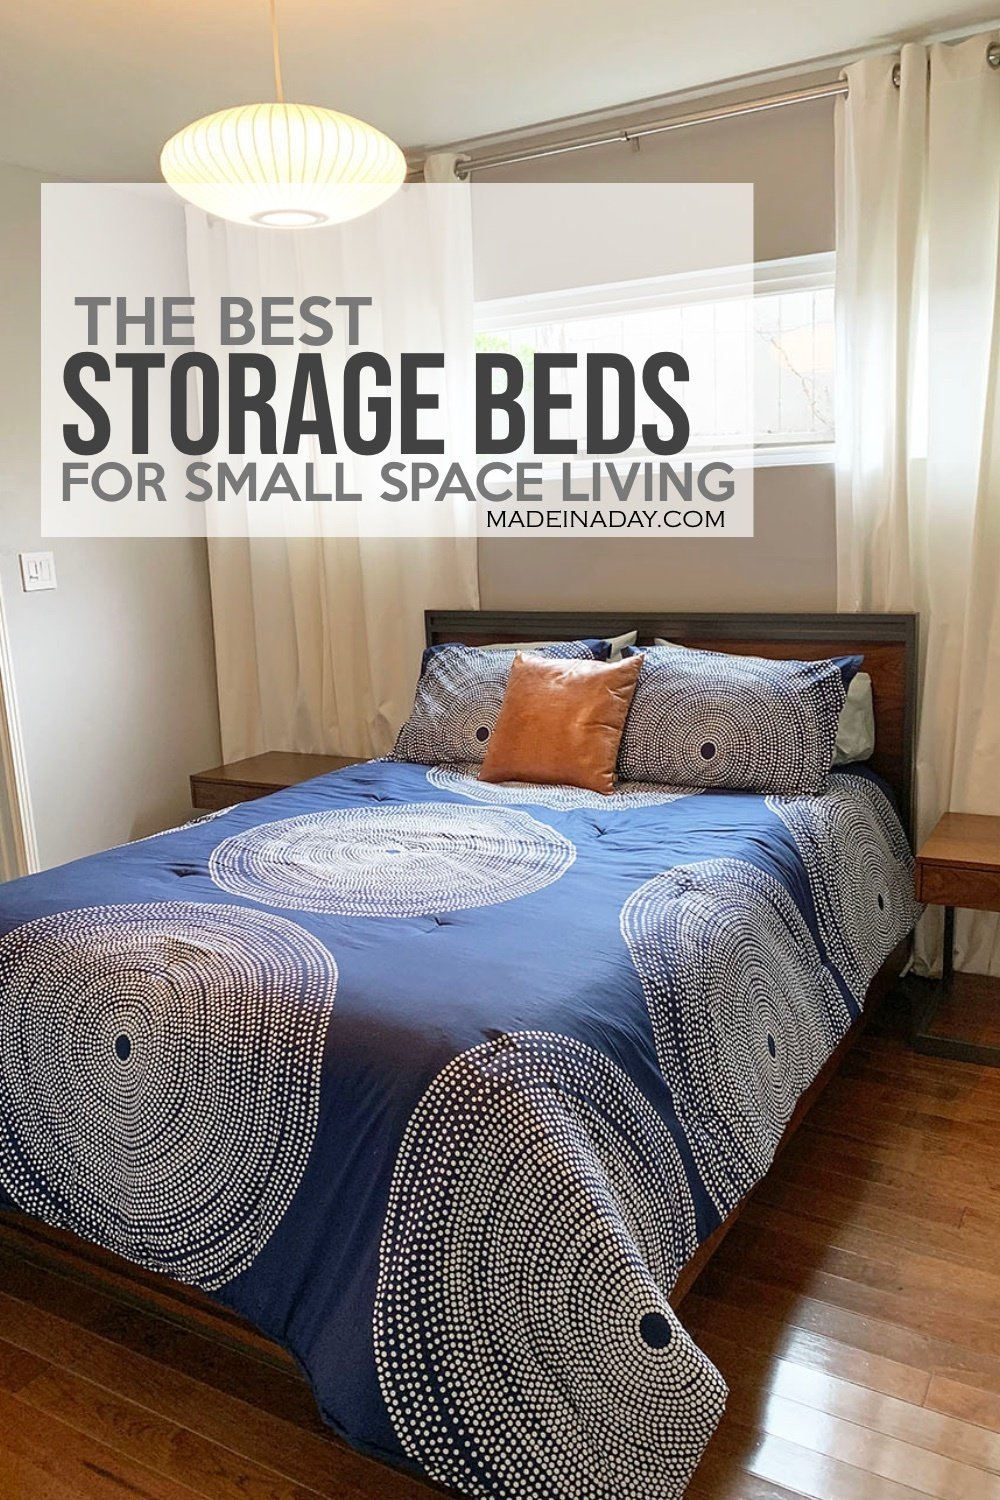 The Best Storage Beds for Small Spaces 16